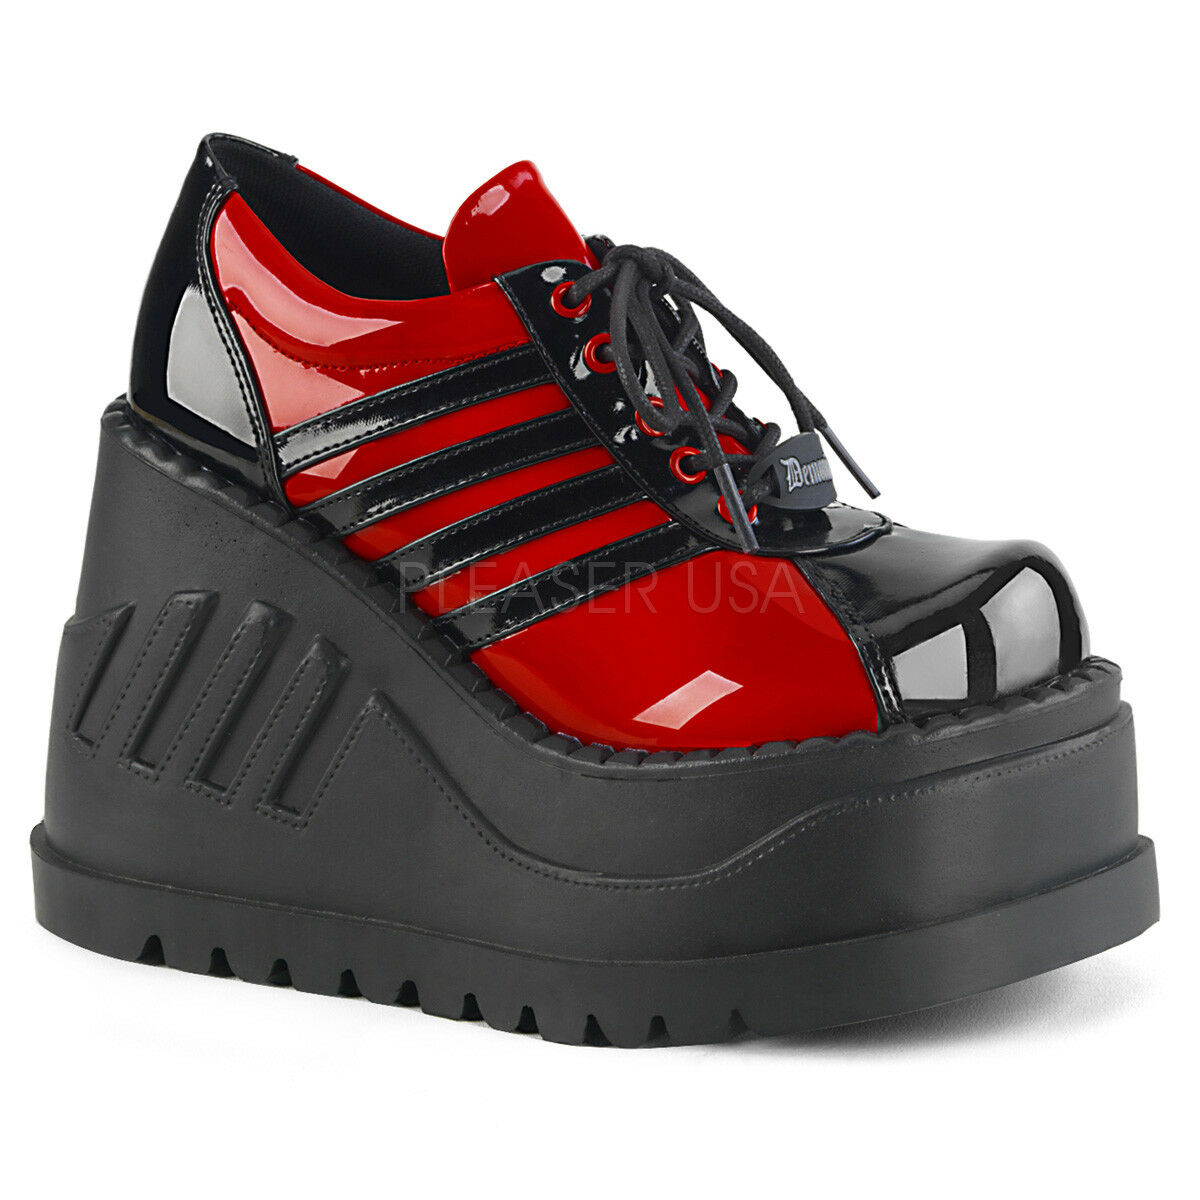 Black Red Platform Platform Platform Wedge shoes Sneaker Boots Demonia Harley Quinn Spice Girls 50bf91